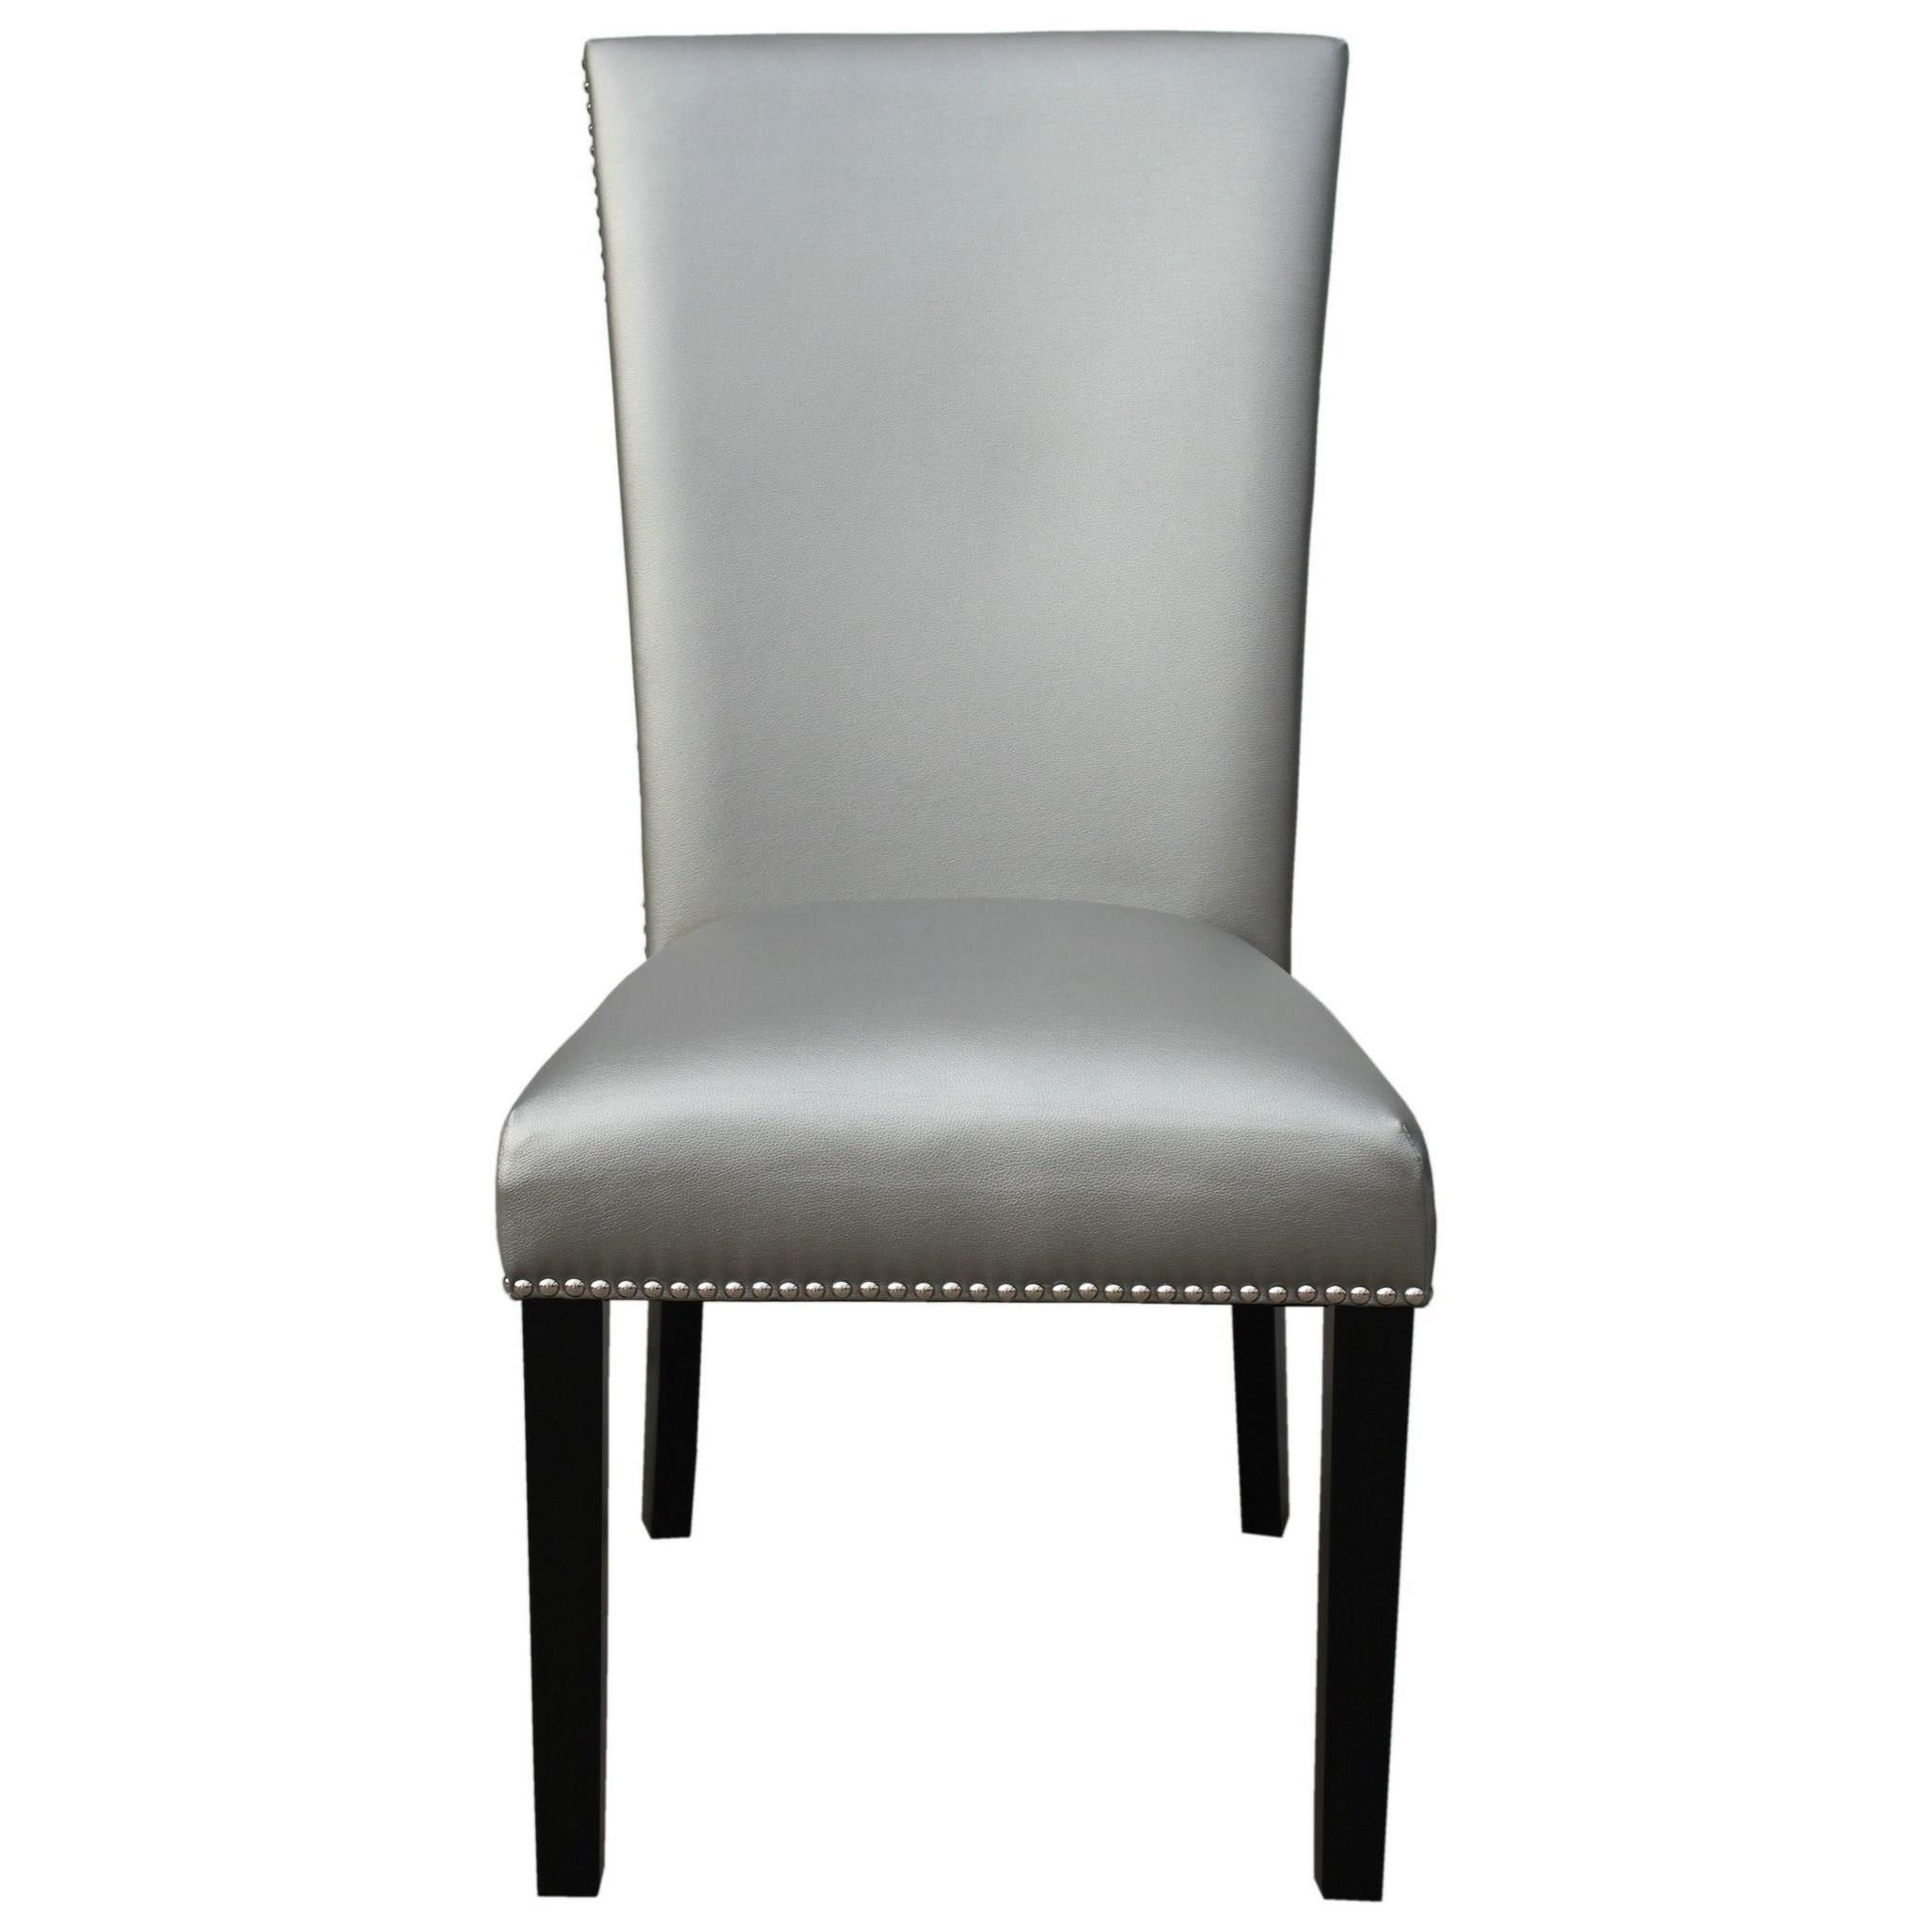 Camila Dining Chair with Nailhead by Steve Silver at Northeast Factory Direct